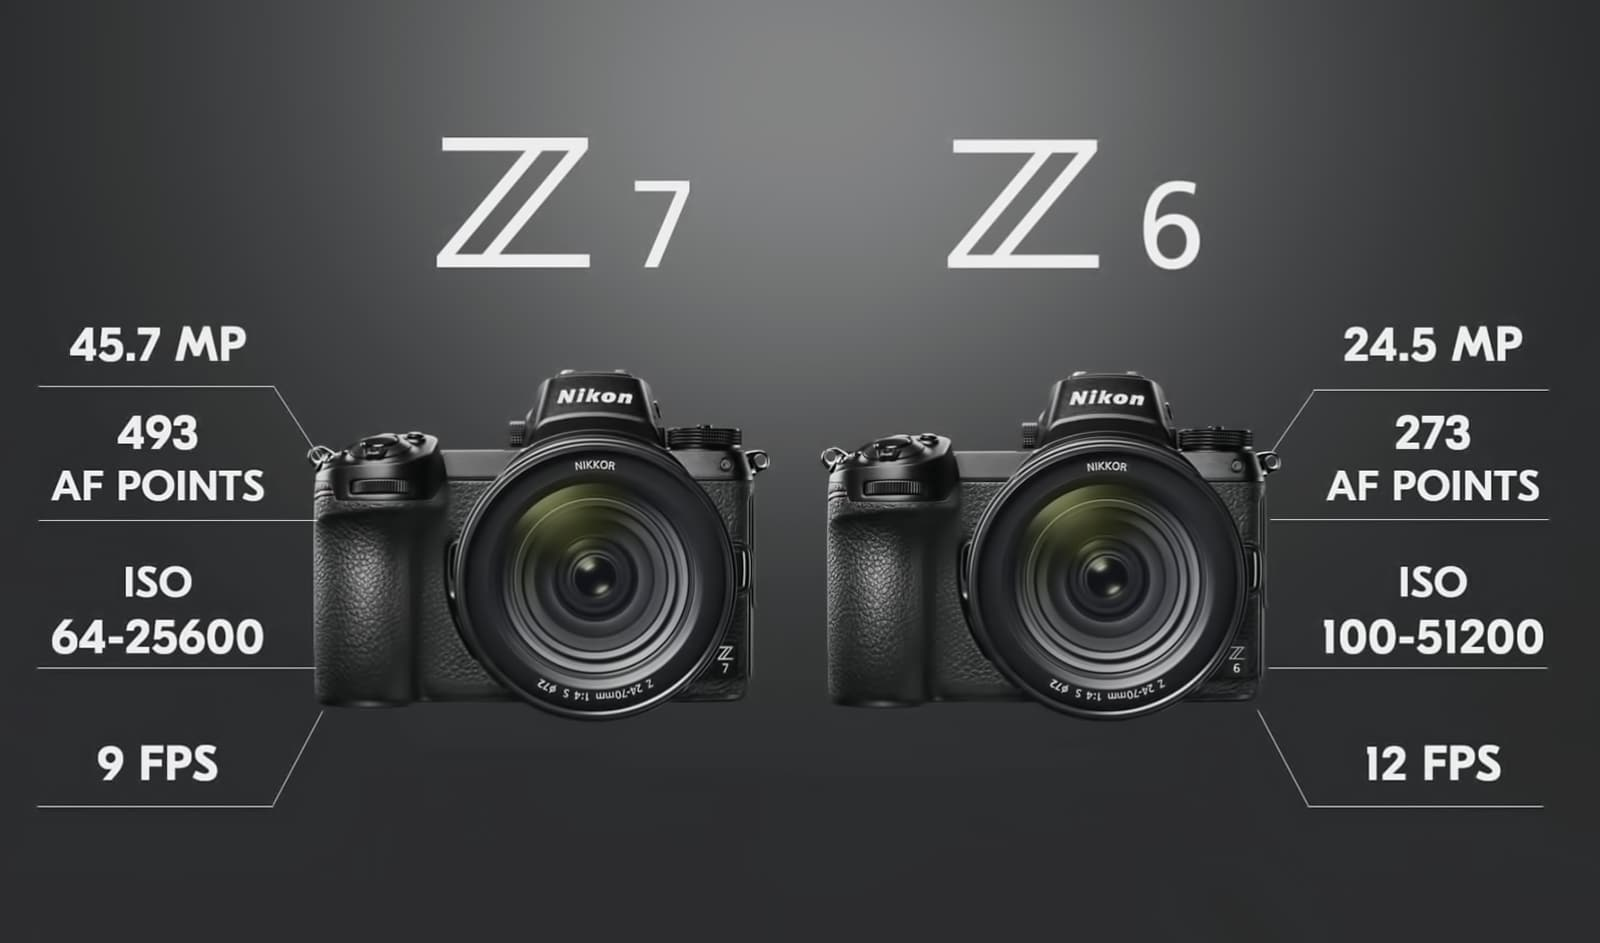 The new Z6 and Z7 mirrorless cameras from Nikon. Wildlife Photographer Richard Costin has a hands on preview with the Z7.